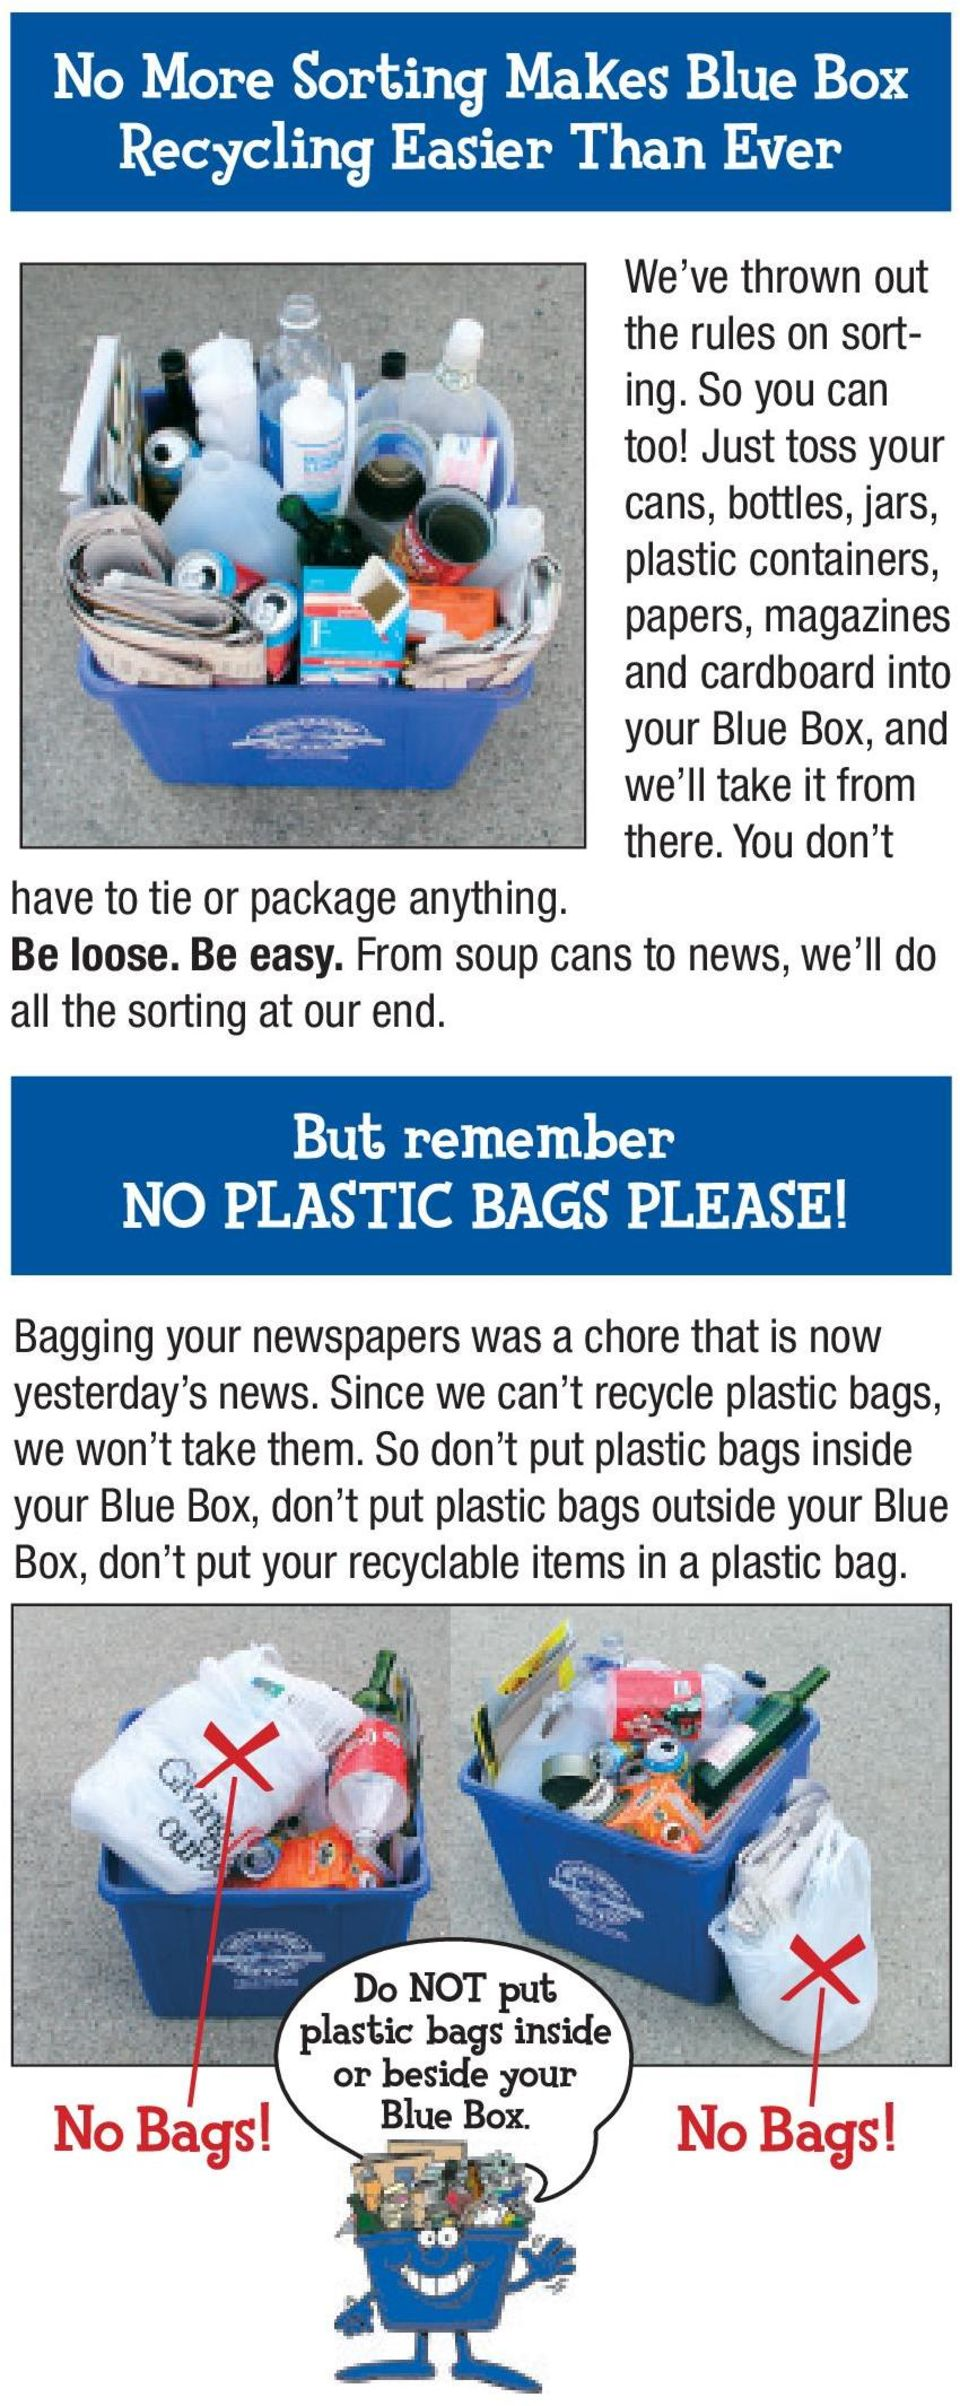 Be loose. Be easy. From soup cans to news, we ll do all the sorting at our end. But remember NO PLASTIC BAGS PLEASE! Bagging your newspapers was a chore that is now yesterday s news.